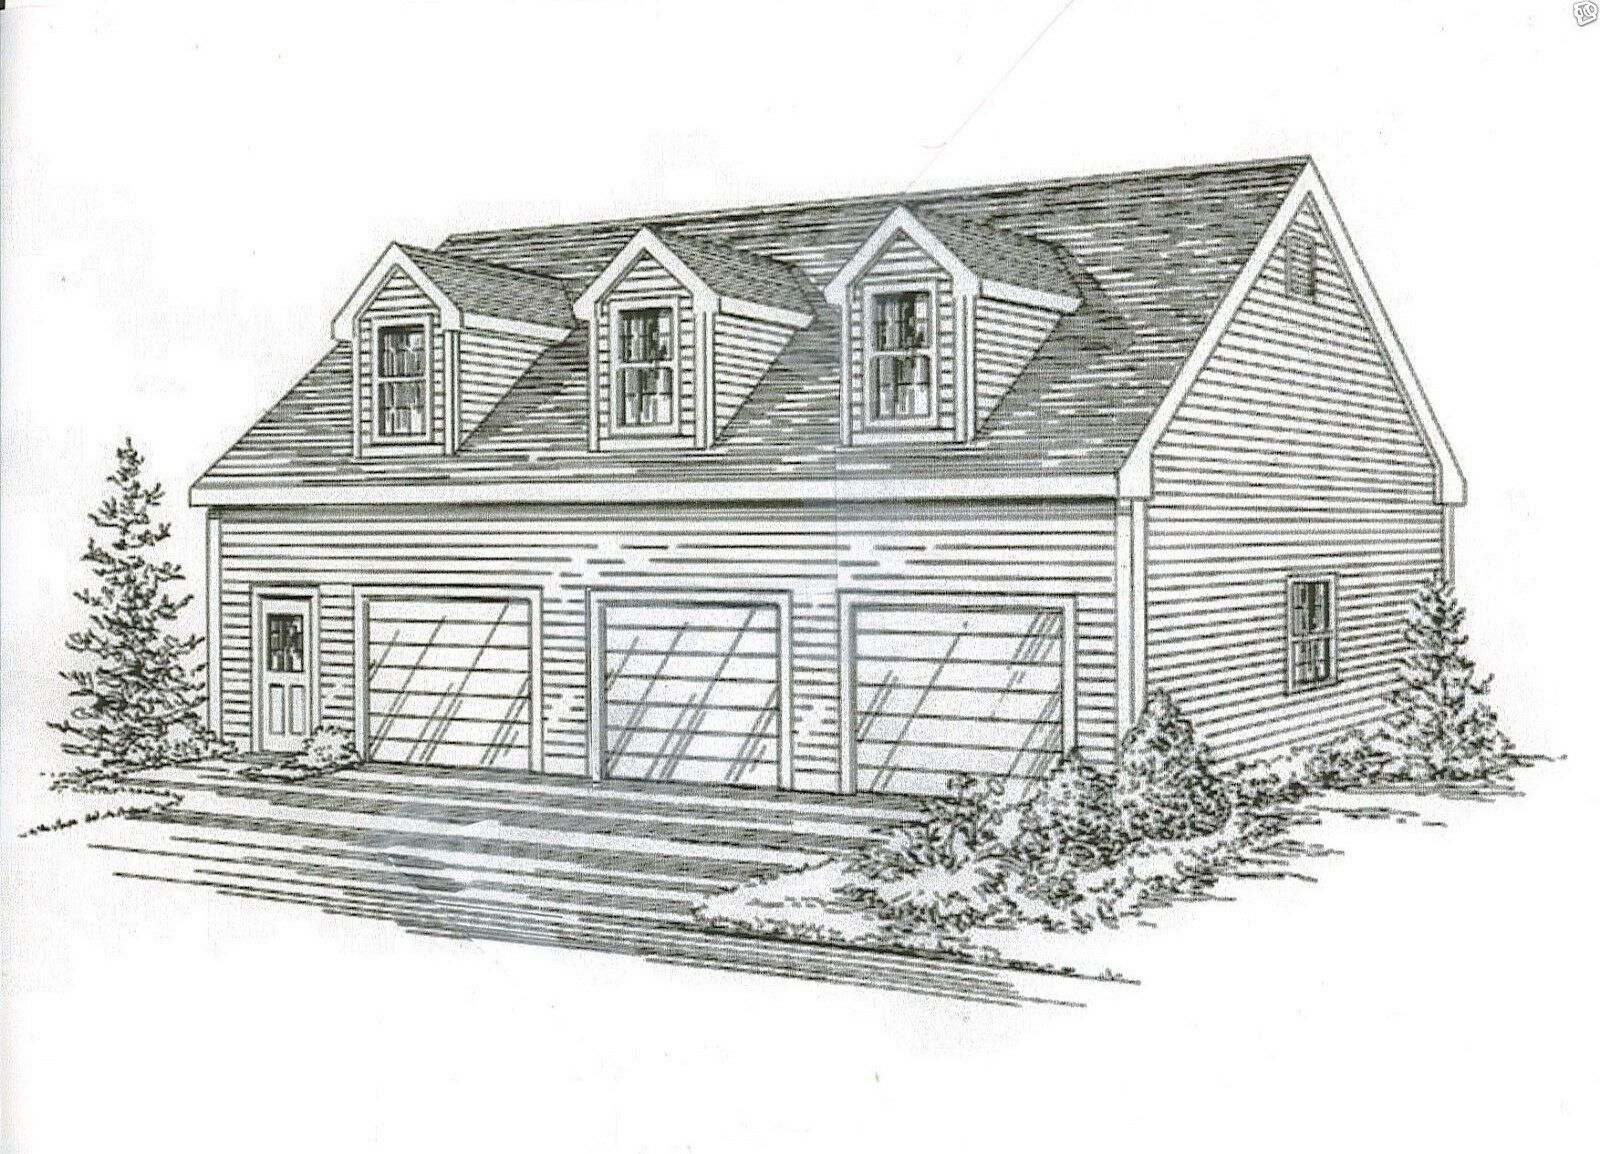 42x32 3 car garage building blueprint plans with walk up open loft 42x32 3 car garage building blueprint plans with walk up open loft area 1 of 2free shipping 42x32 3 car garage building blueprint malvernweather Image collections